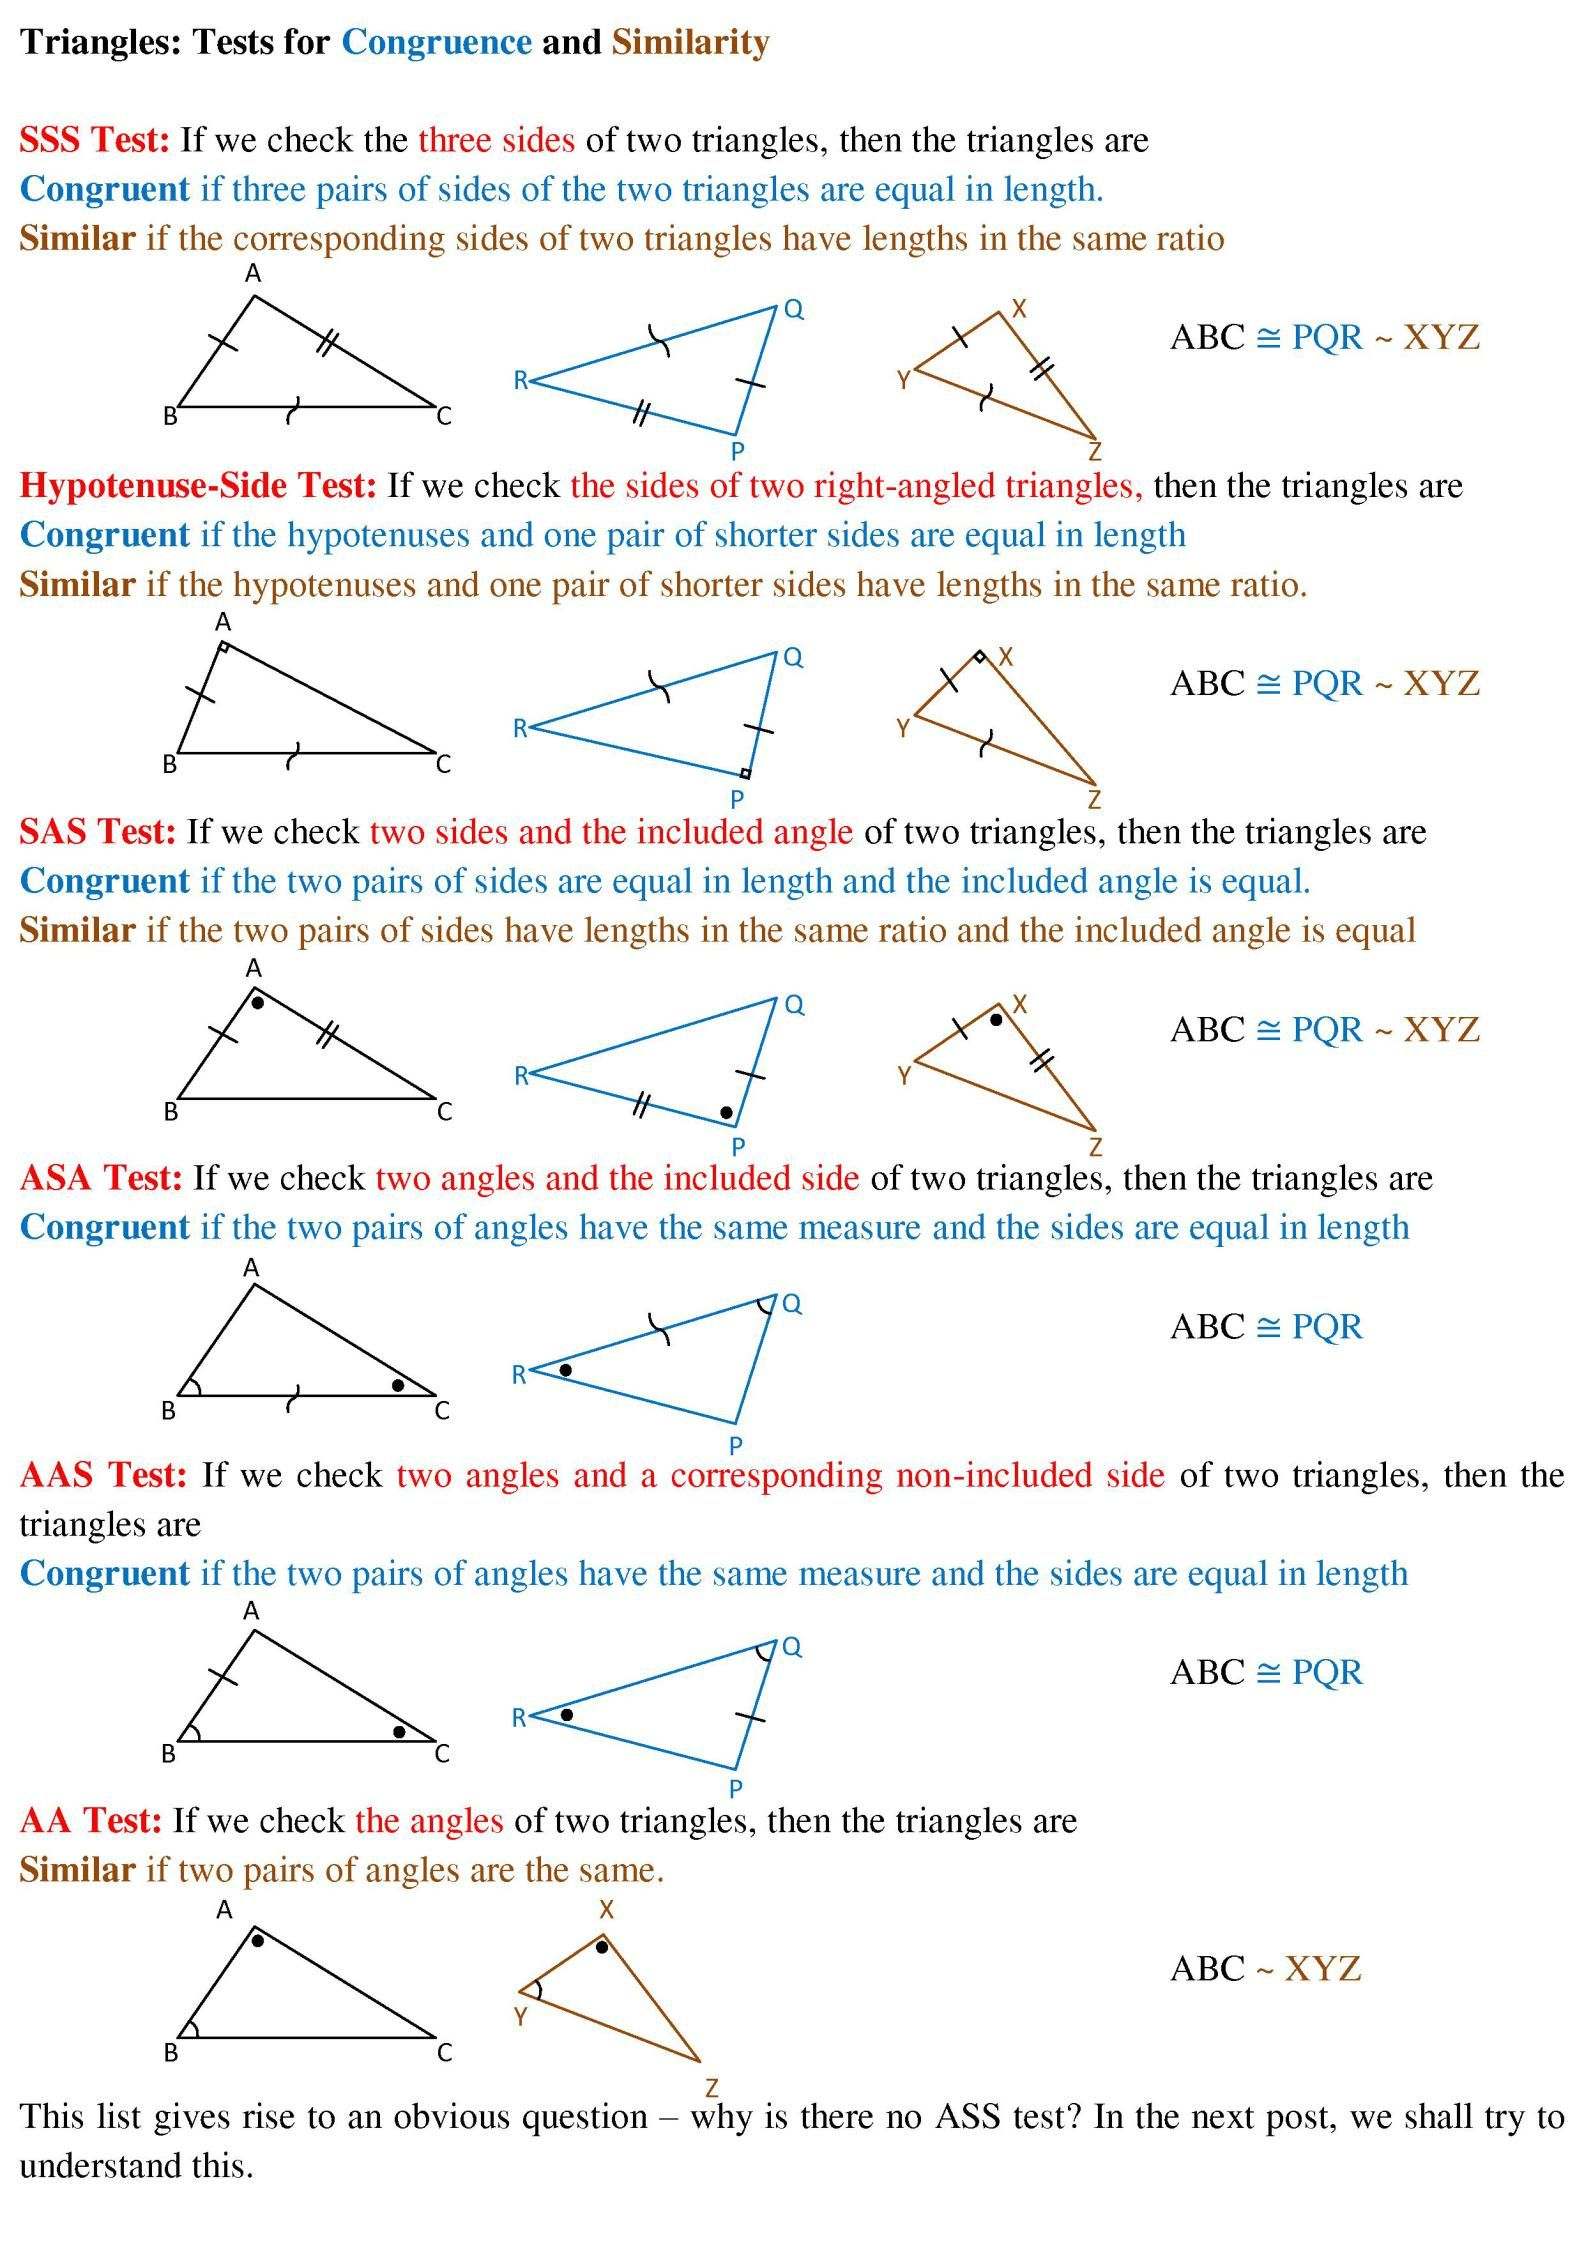 Triangles Similarity And Congruence Cat Holics